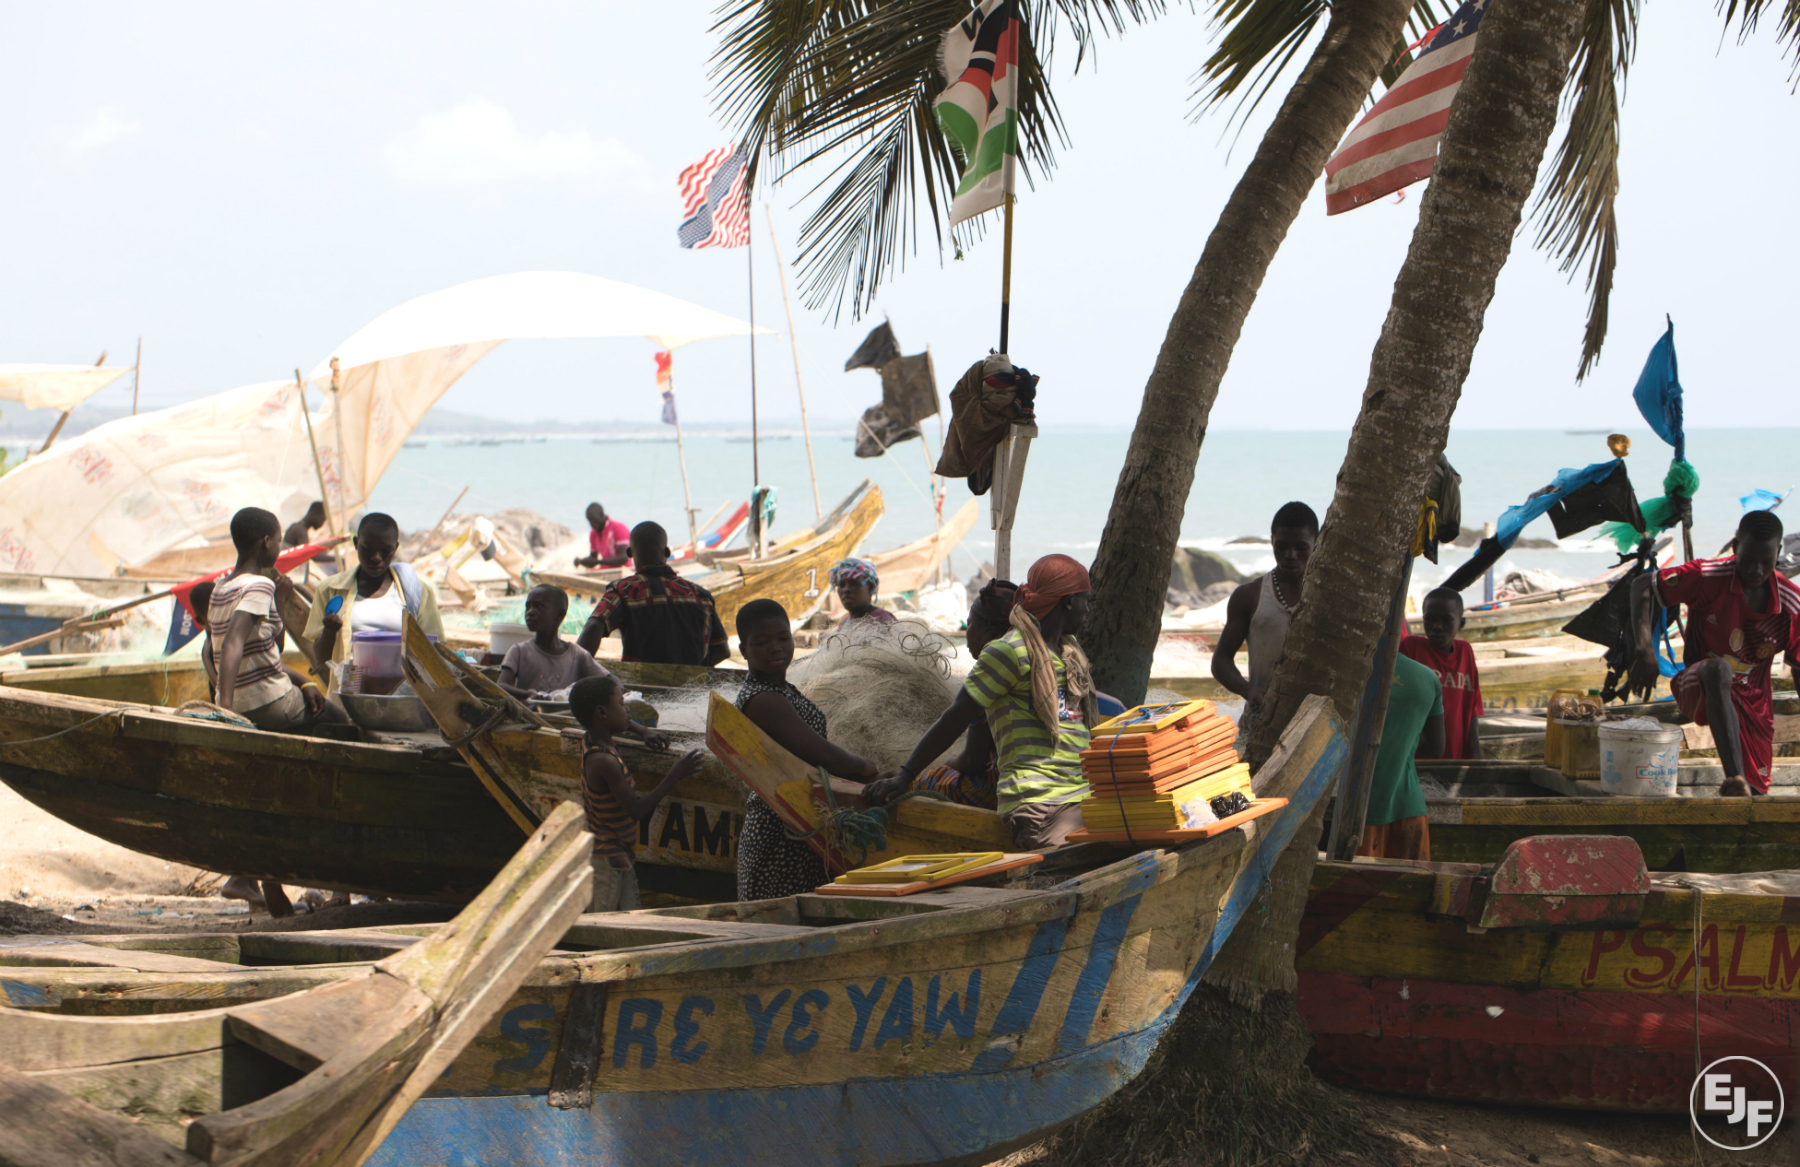 Ghana's small-scale fishing industry makes its voice heard in fisheries law reforms